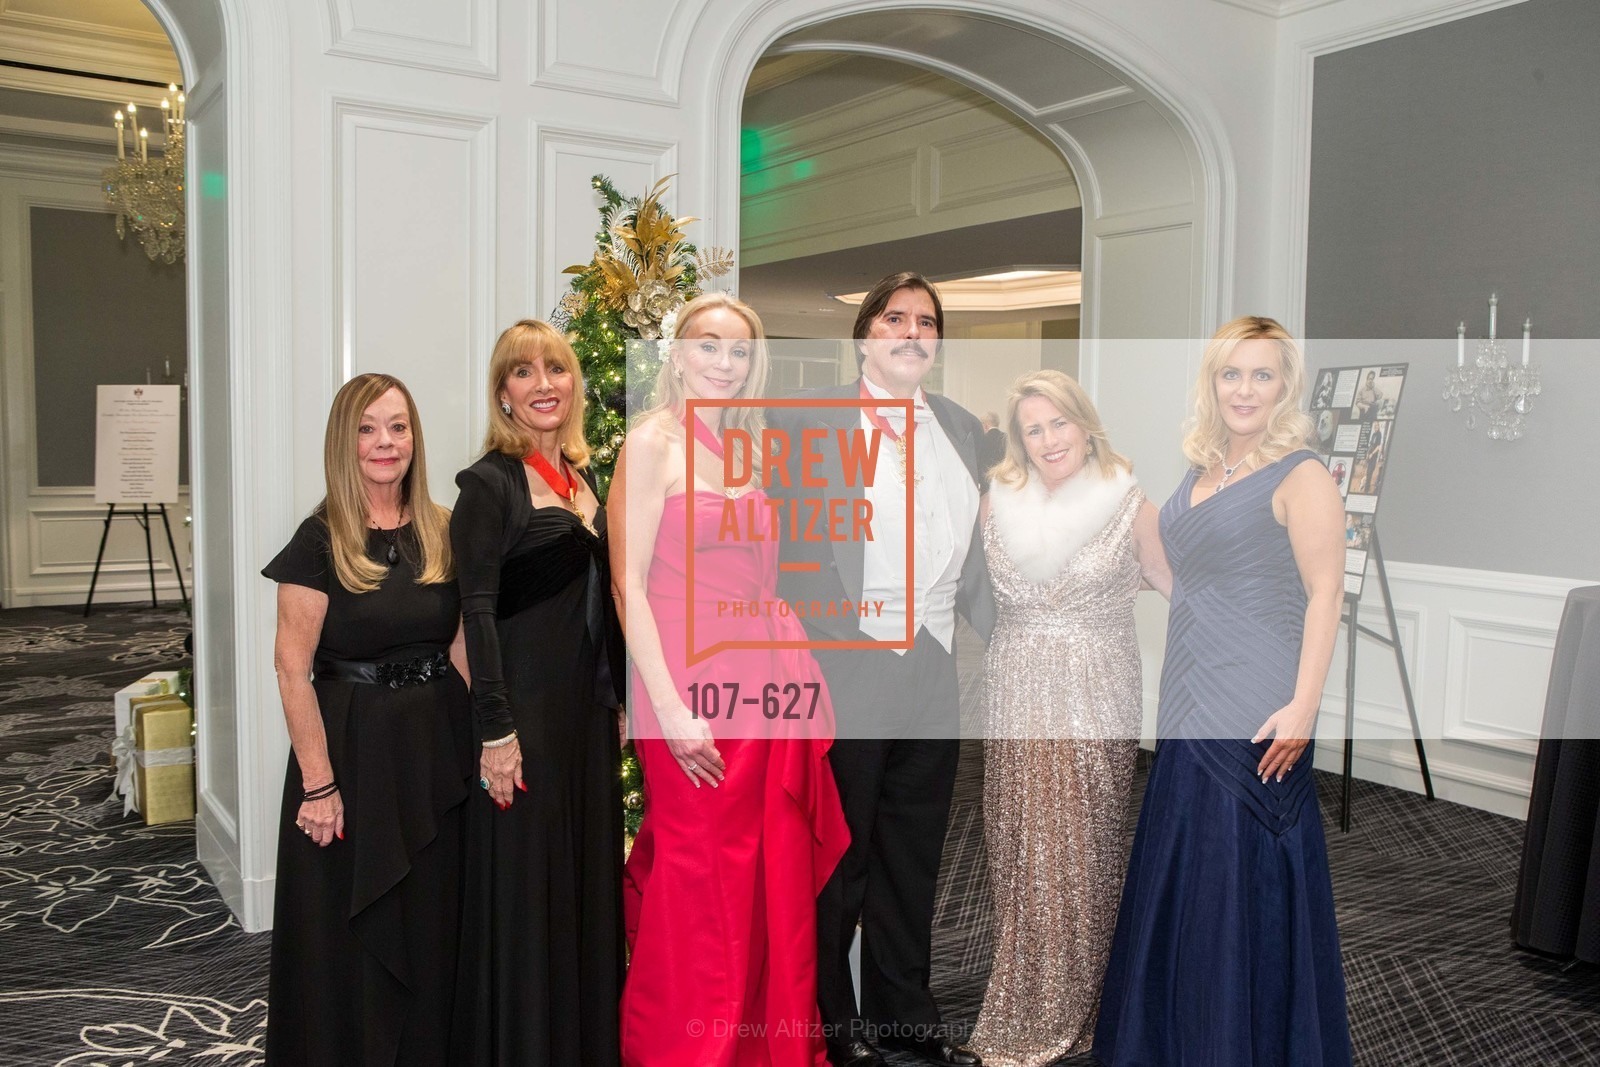 Barbara Oates, Sydene Kober, Giselle Anna Parry, John Rosin, Karen Haake, Michelle Rose, Sovereign Order Of St John of Jerusalem Knights Hospitaller Gala, Ritz Carlton San Francisco, December 5th, 2015,Drew Altizer, Drew Altizer Photography, full-service agency, private events, San Francisco photographer, photographer california